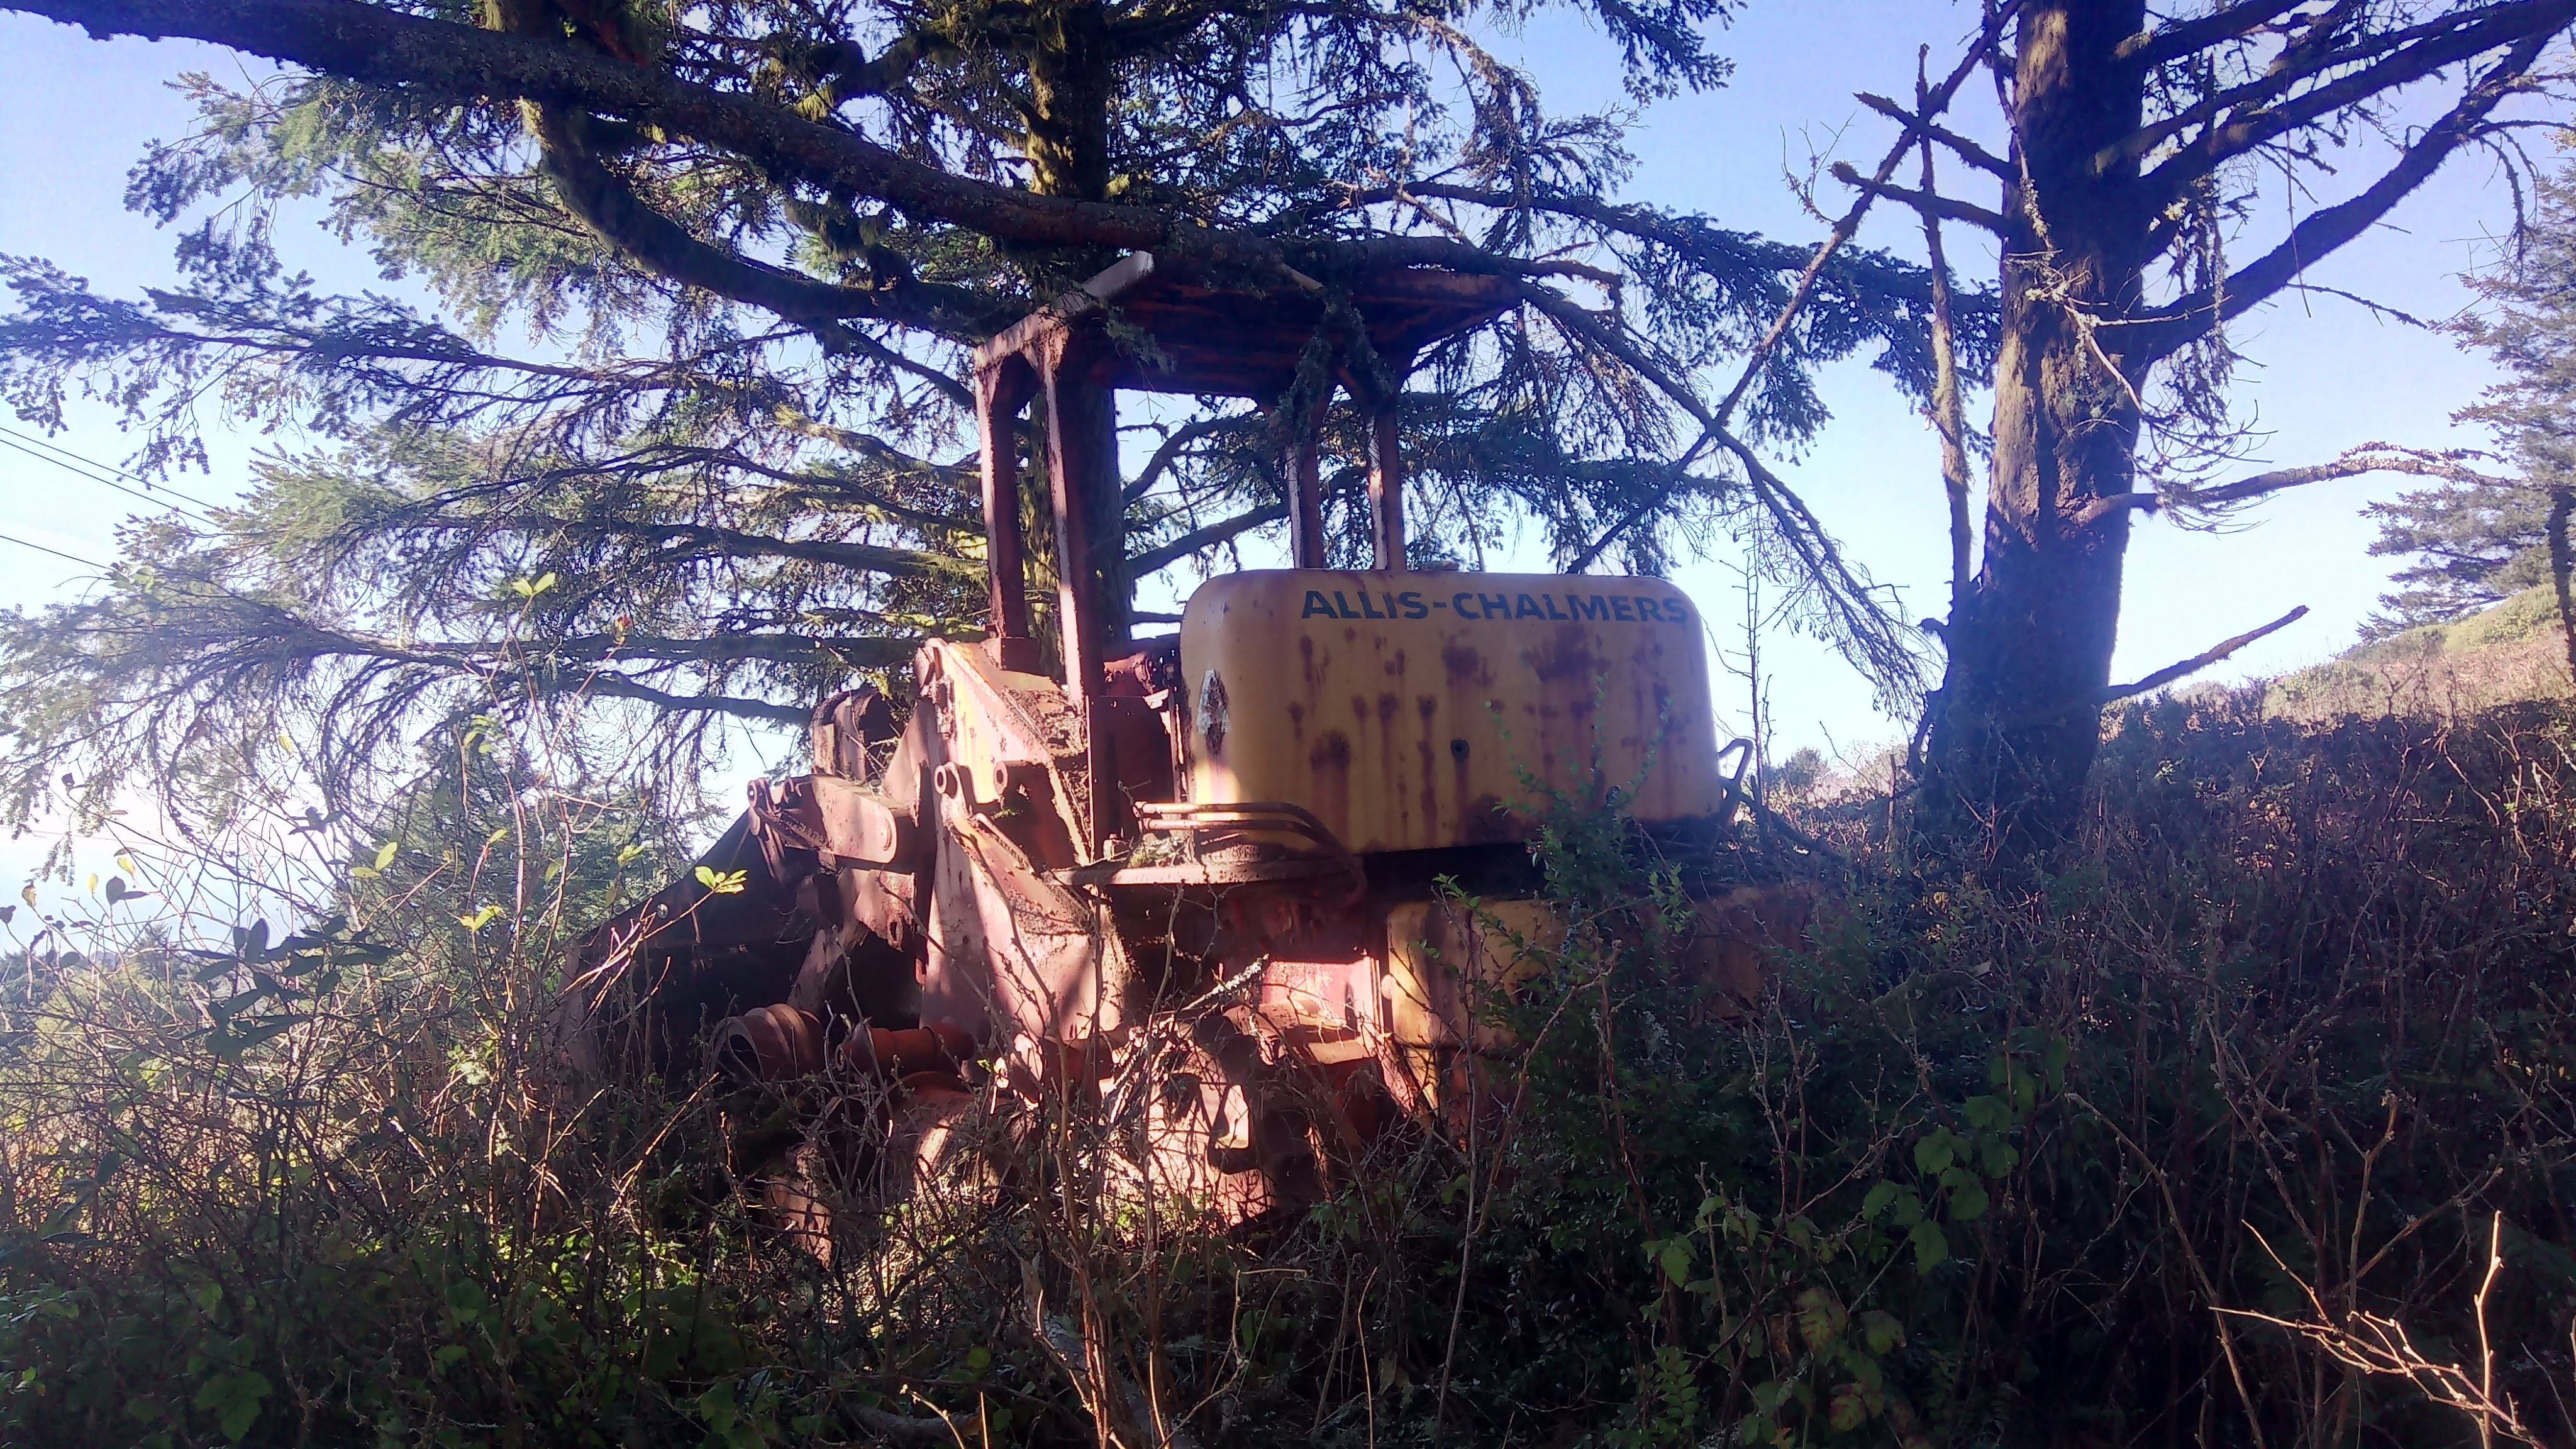 An abandoned tractor